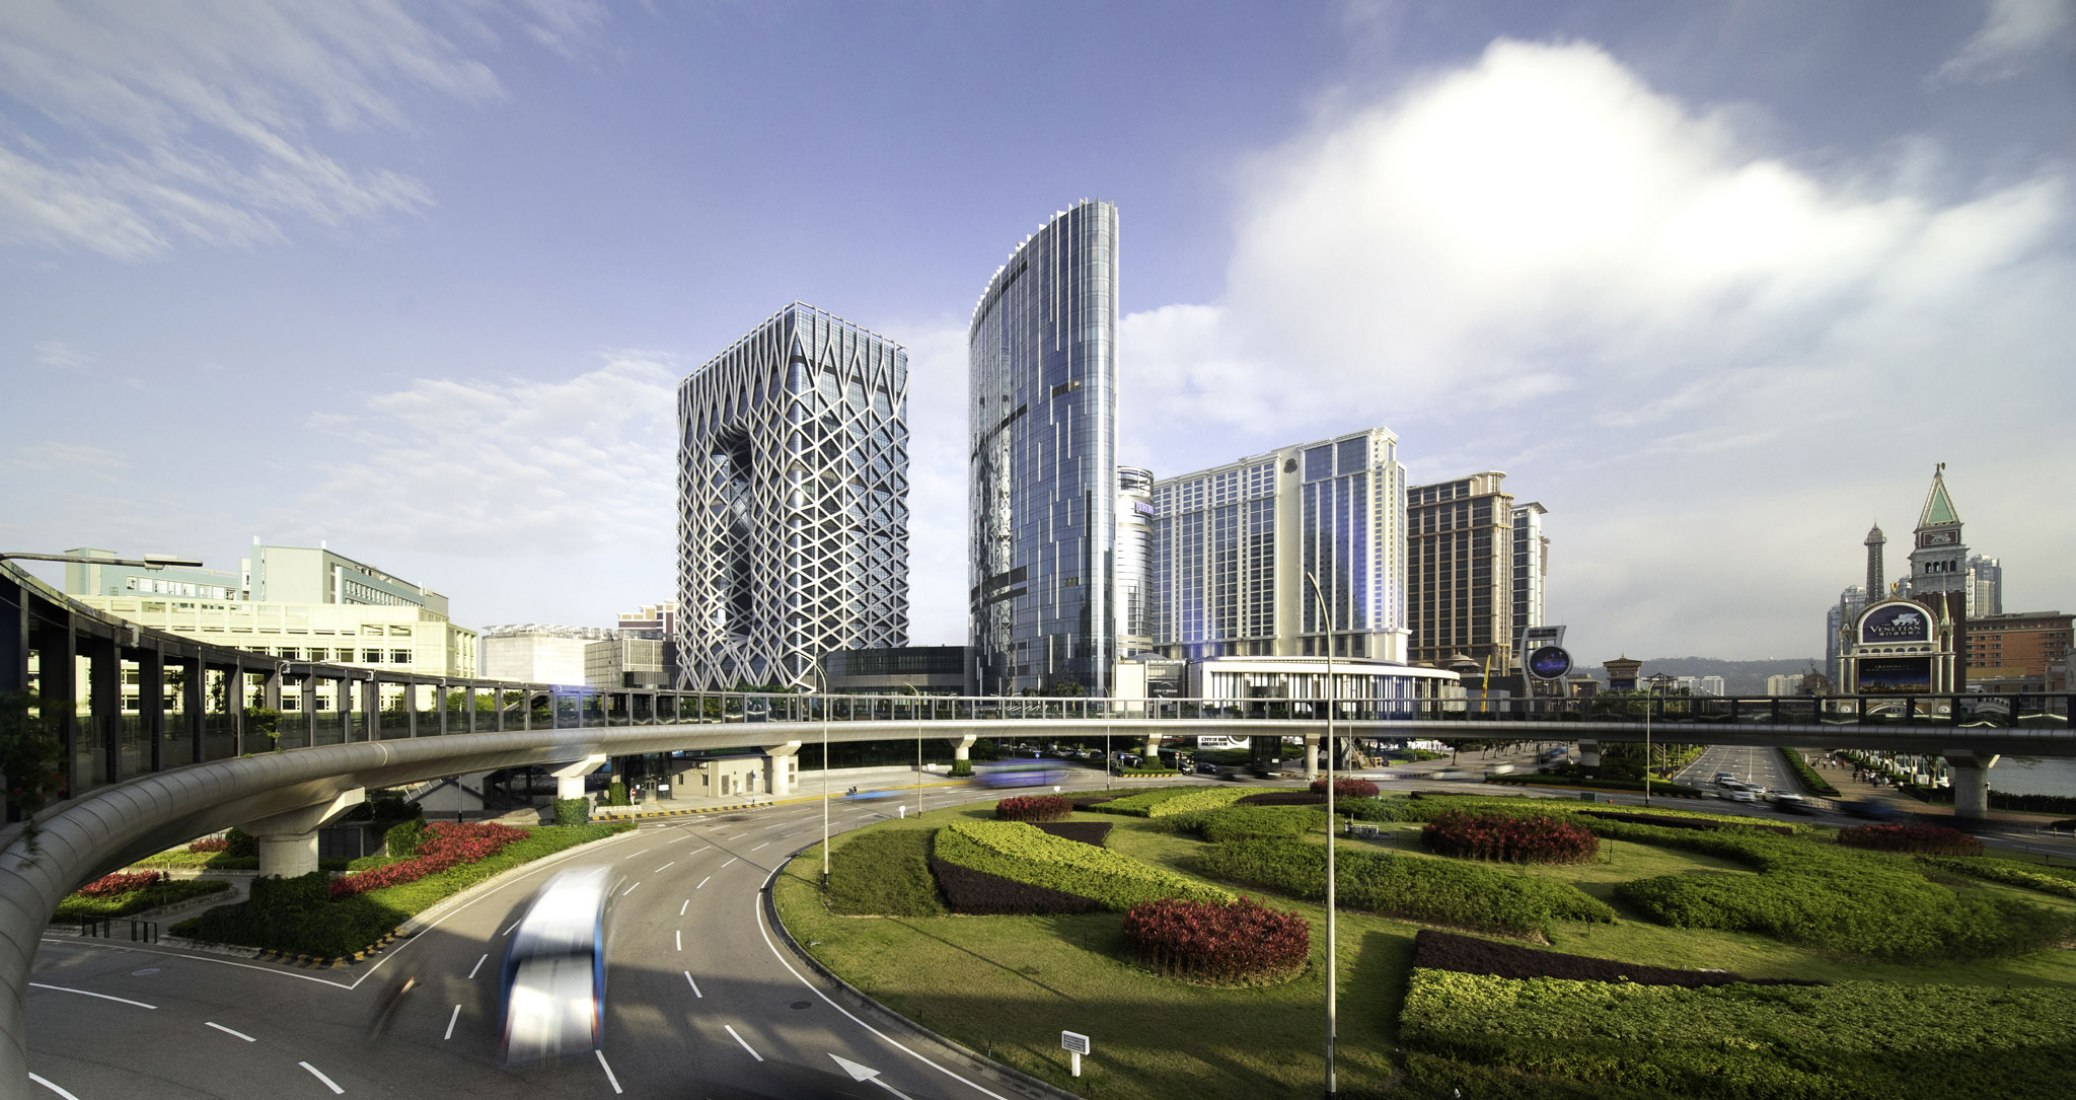 Exterior view. Morpheus, a new flagship hotel for the City of Dreams resort in Macau by Zaha Hadid Architects. Photograph © Ivan Dupont